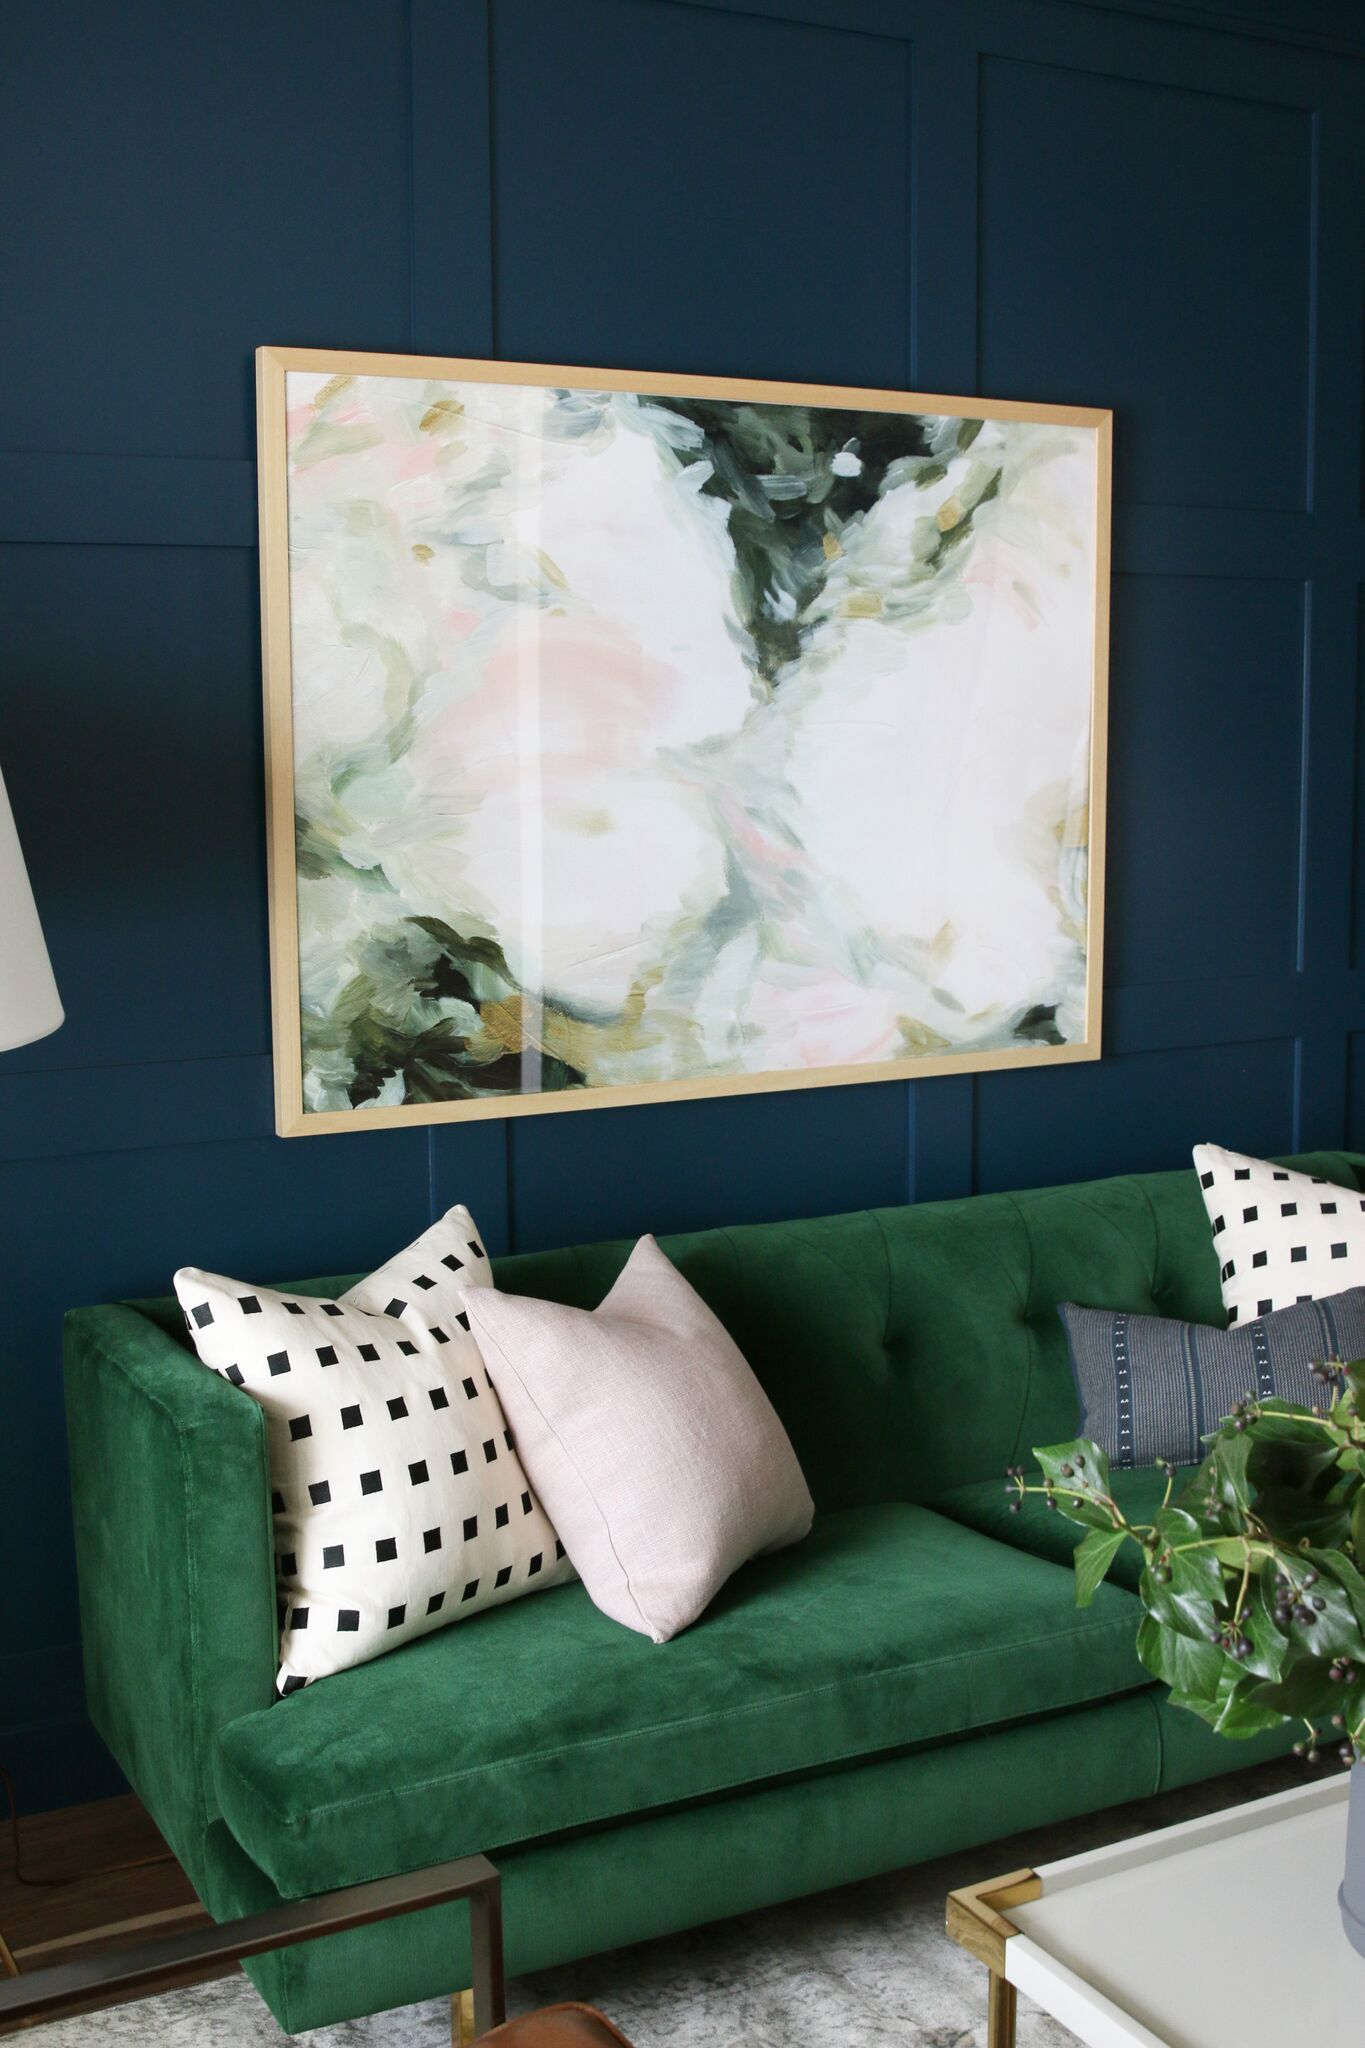 Wall Colors For Living Room With Green Furniture Help To Decorate My Formal Sitting Webisode Studio Mcgee Portfolio Pinterest Inspirational Original Painting